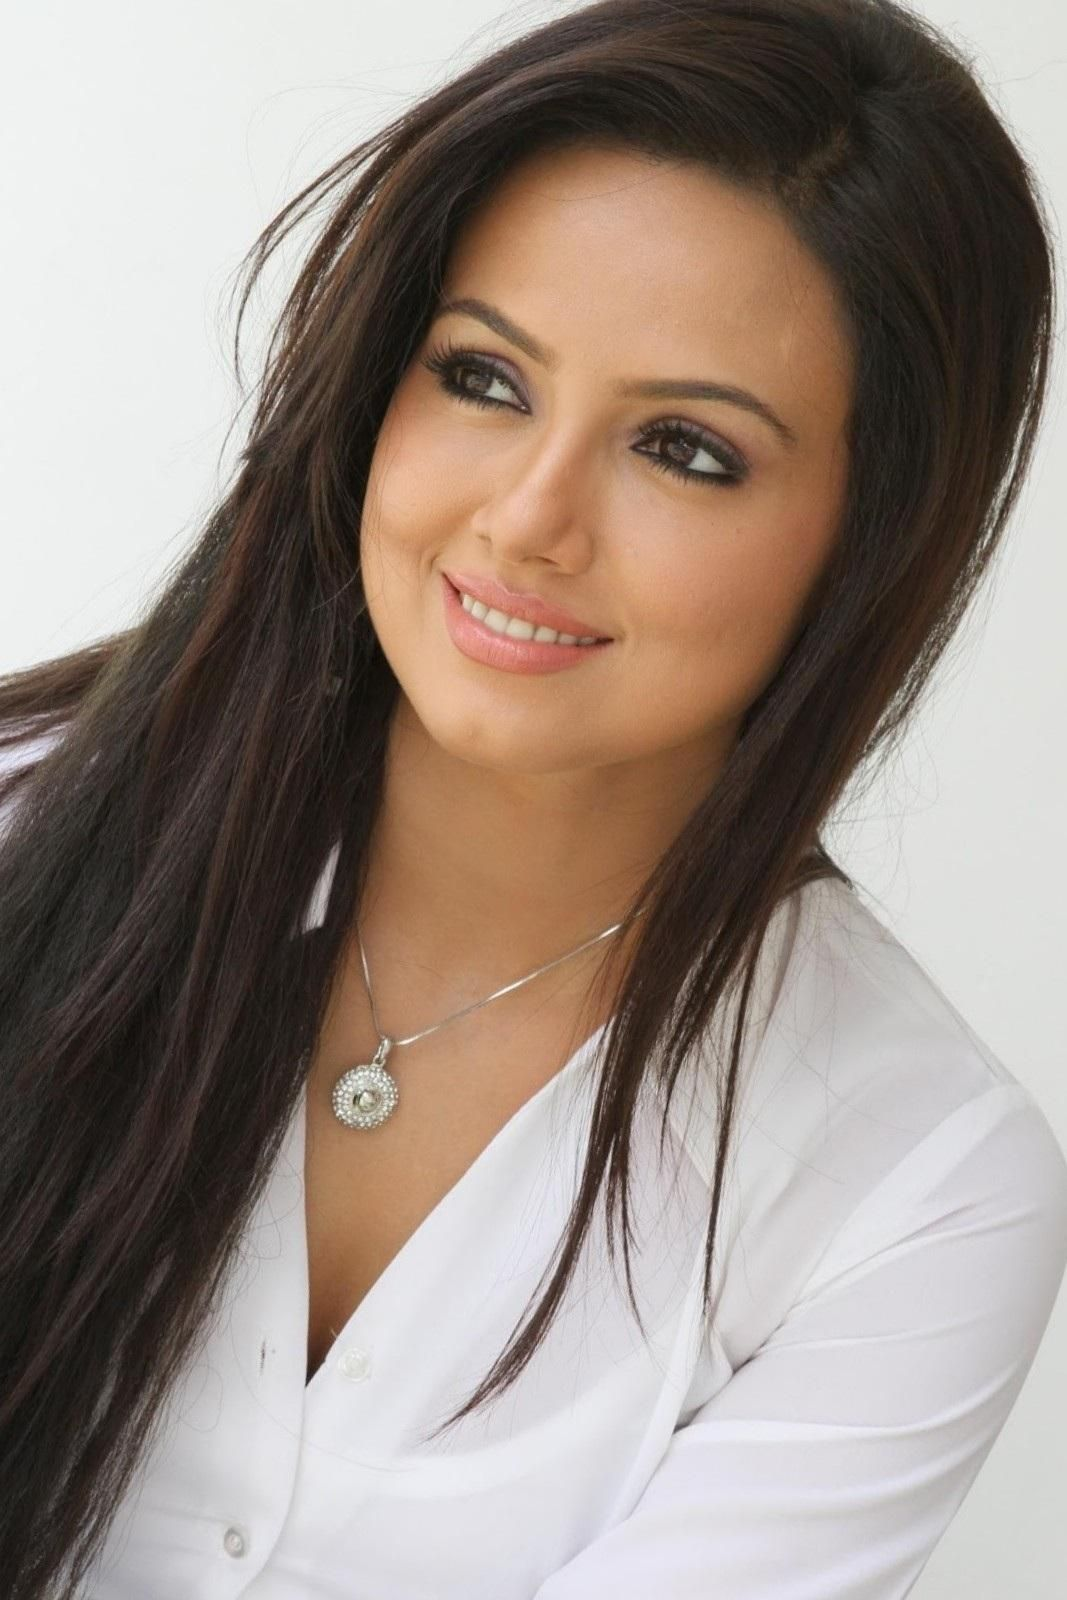 brunette indian actress, model and dancer sana khan (without makeup